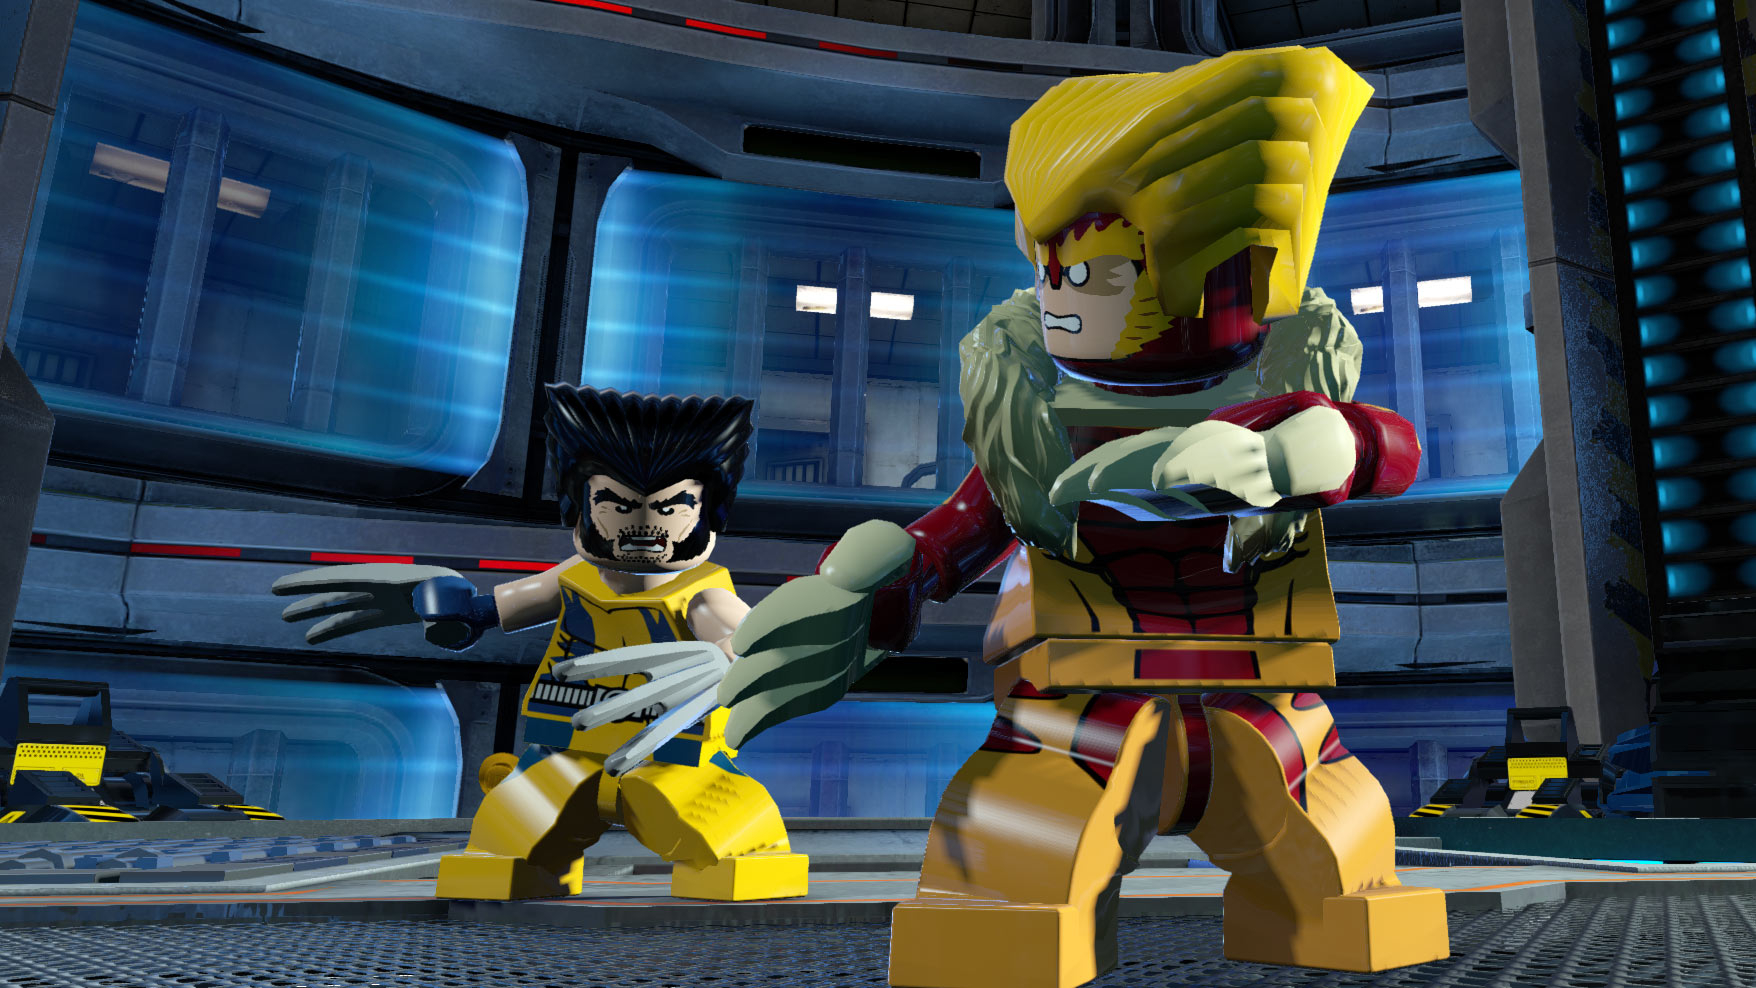 Lego Batman+Marvel+Hobbit | Xbox 360 | Shared account